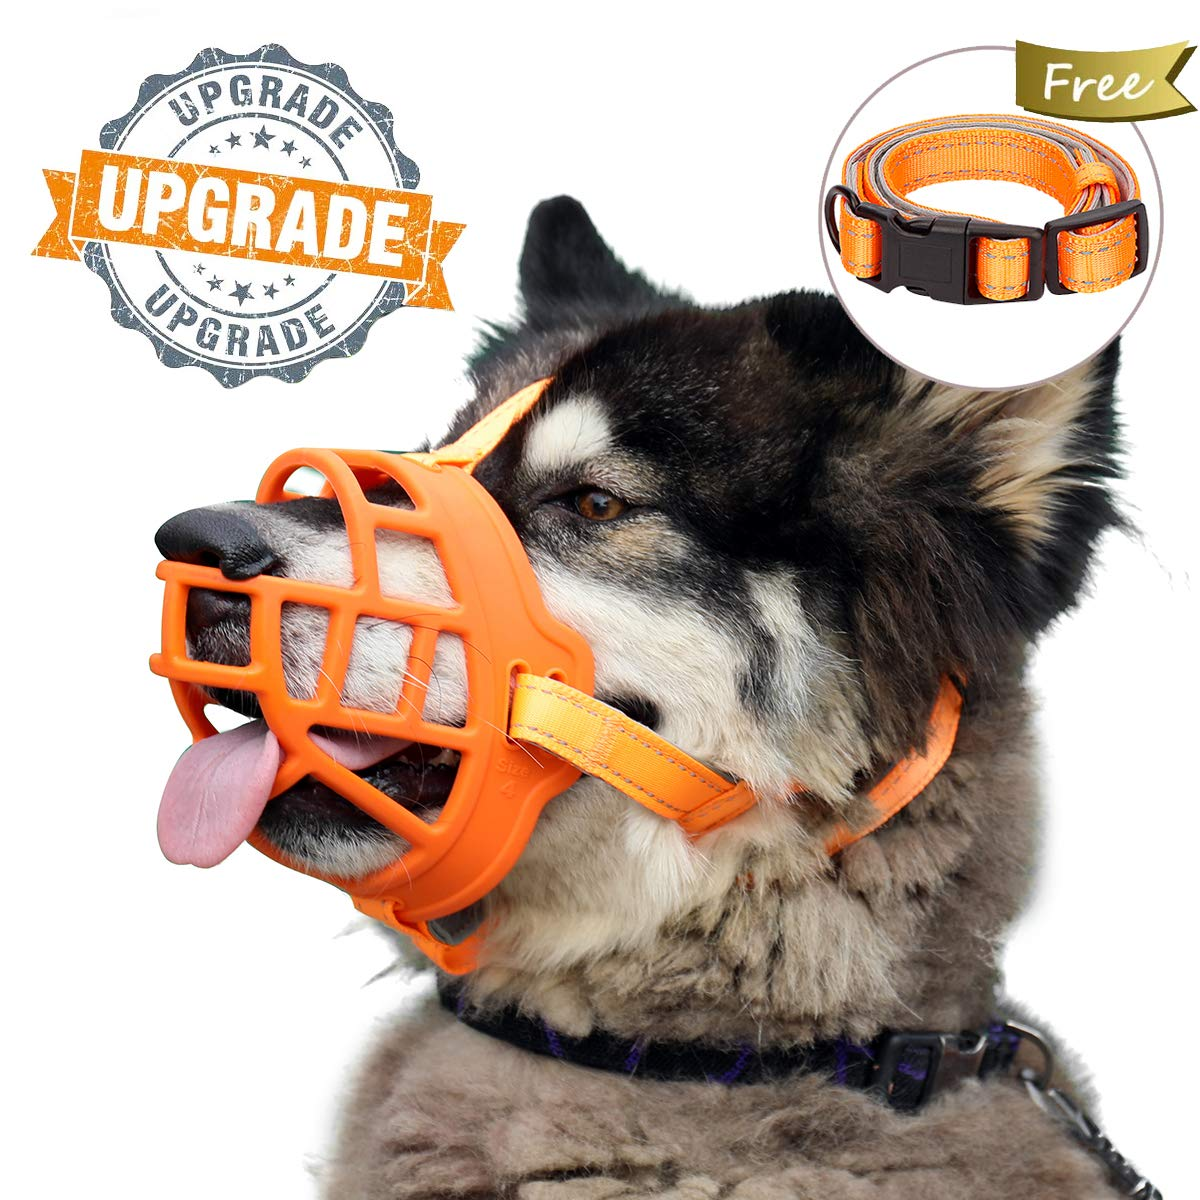 Dog Muzzle, Soft Silicone Basket Muzzle for Dogs, Allows Panting and Drinking, Prevents Unwanted Barking Biting and Chewing, Included Collar and Training Guide (2 (Snout 7.5-9.5''), Orange) by Barkless